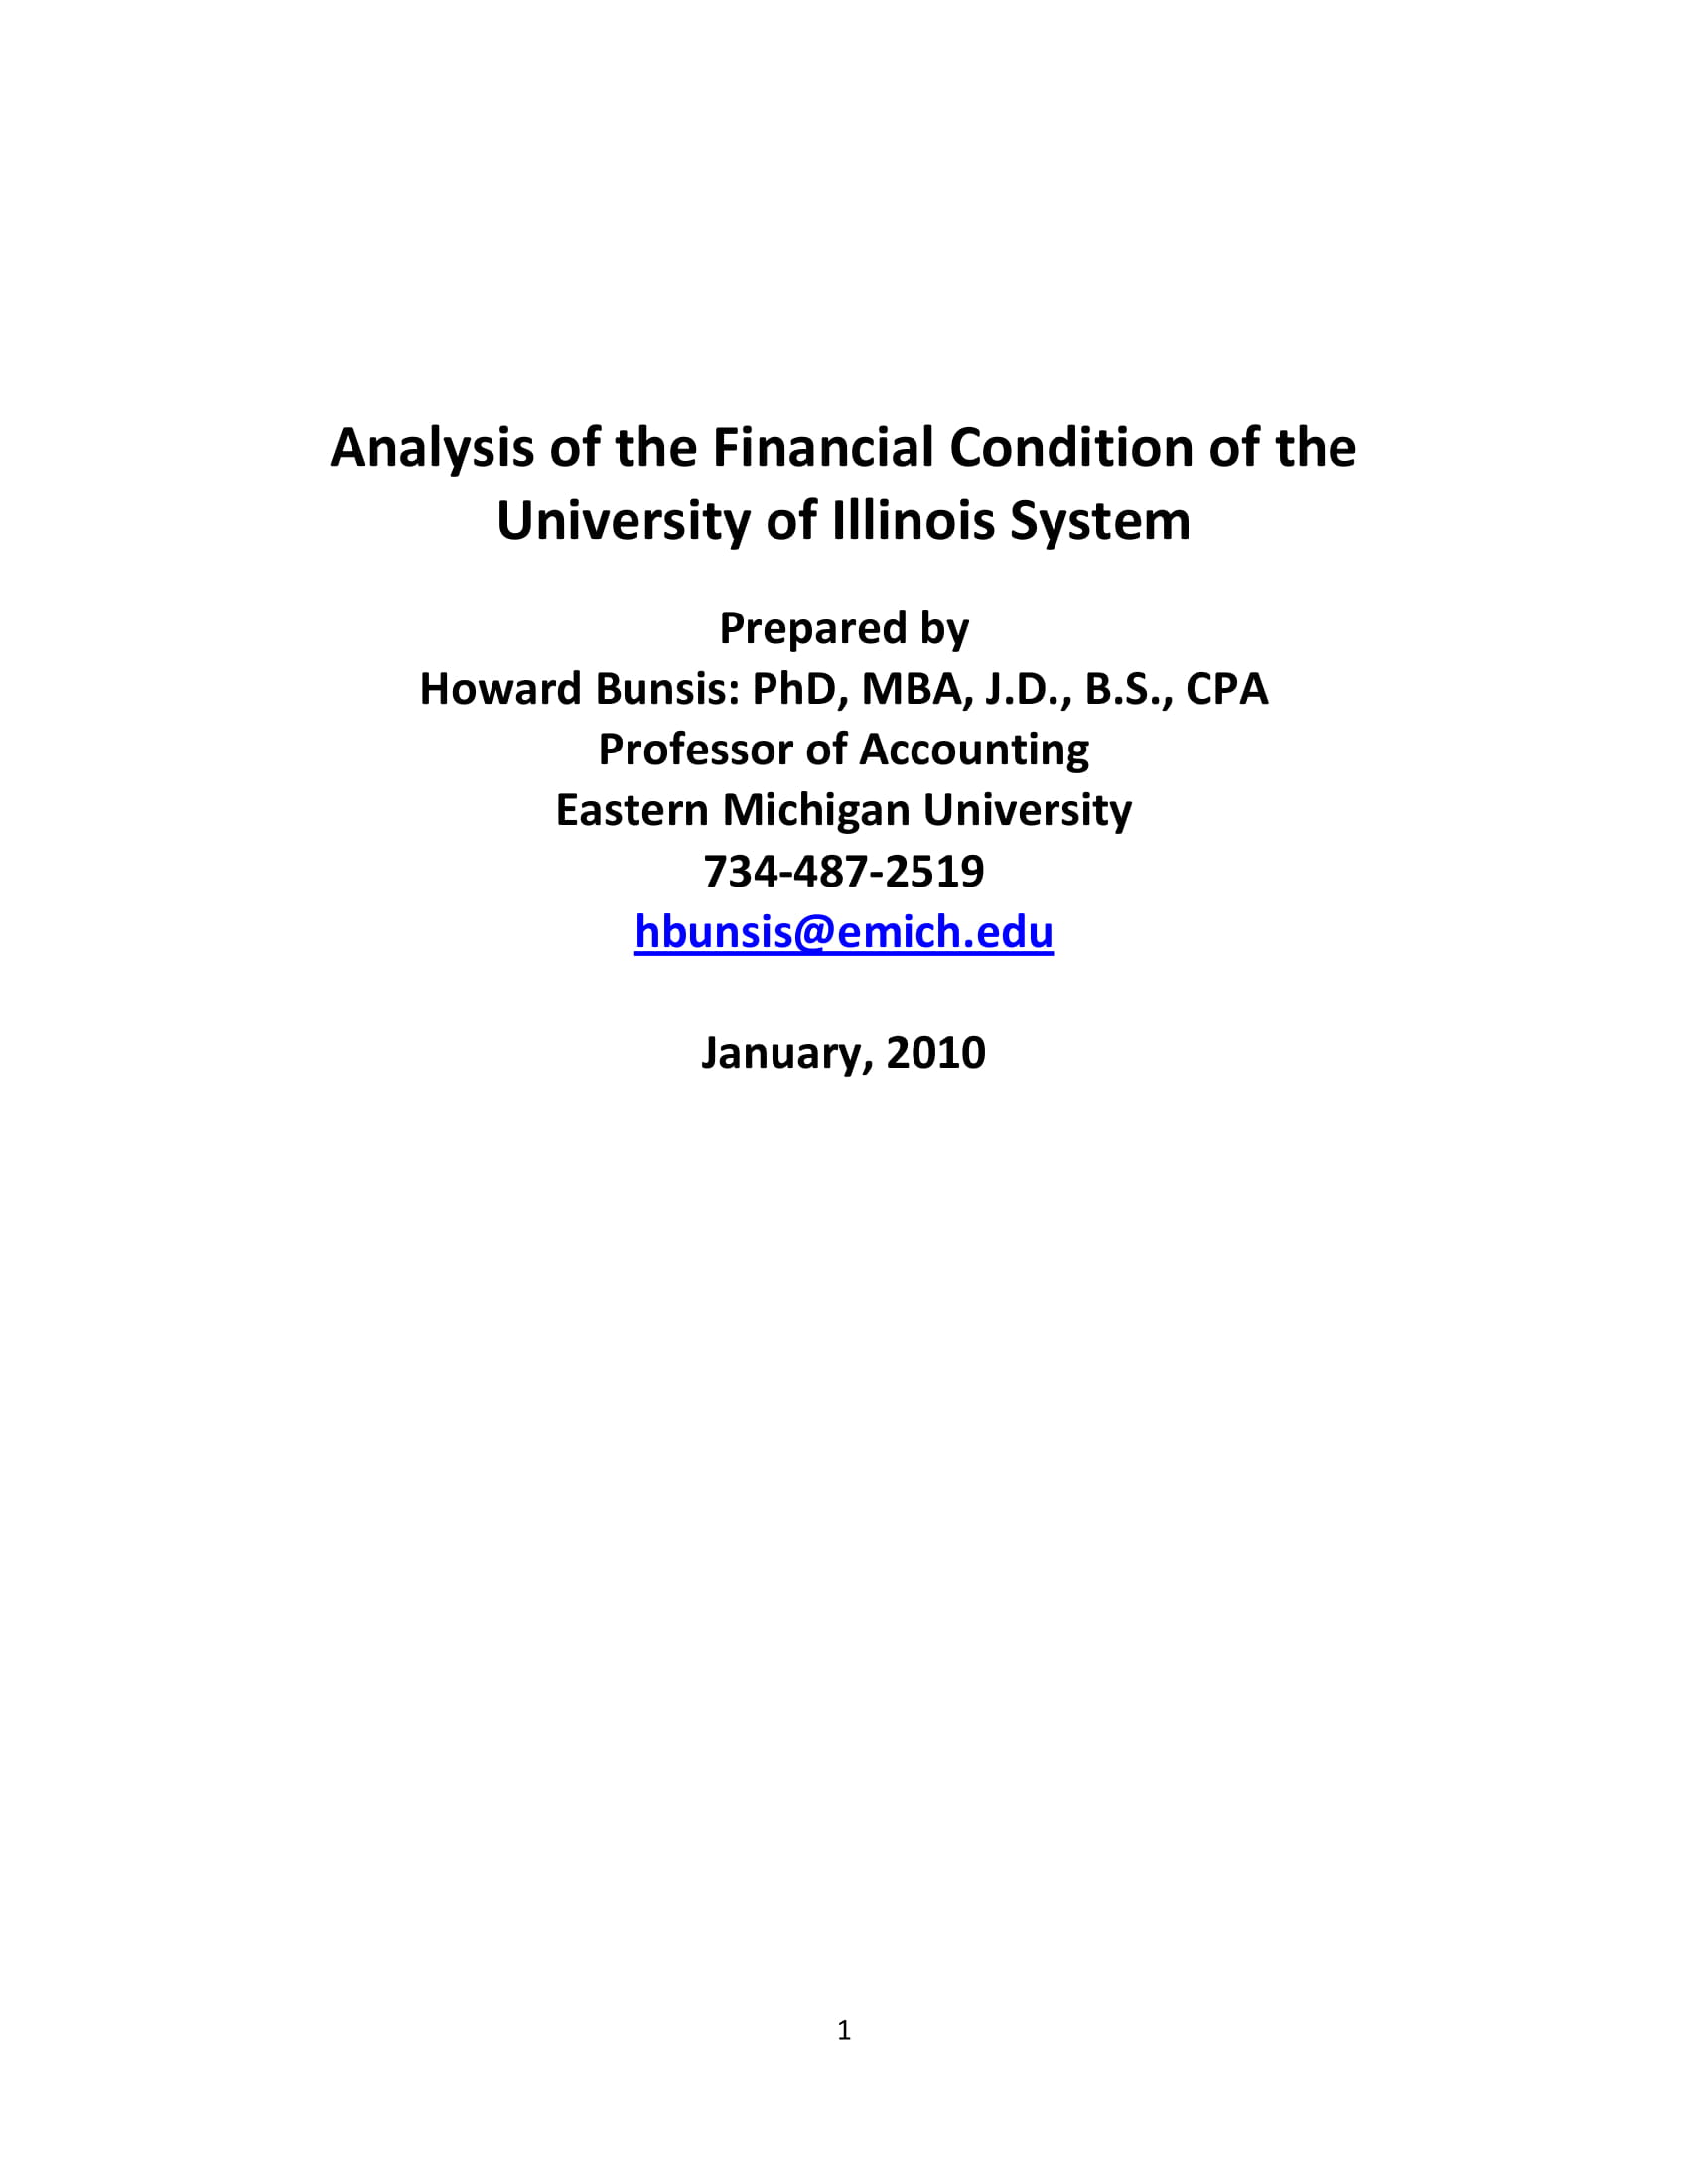 university of illinois financial health analysis example